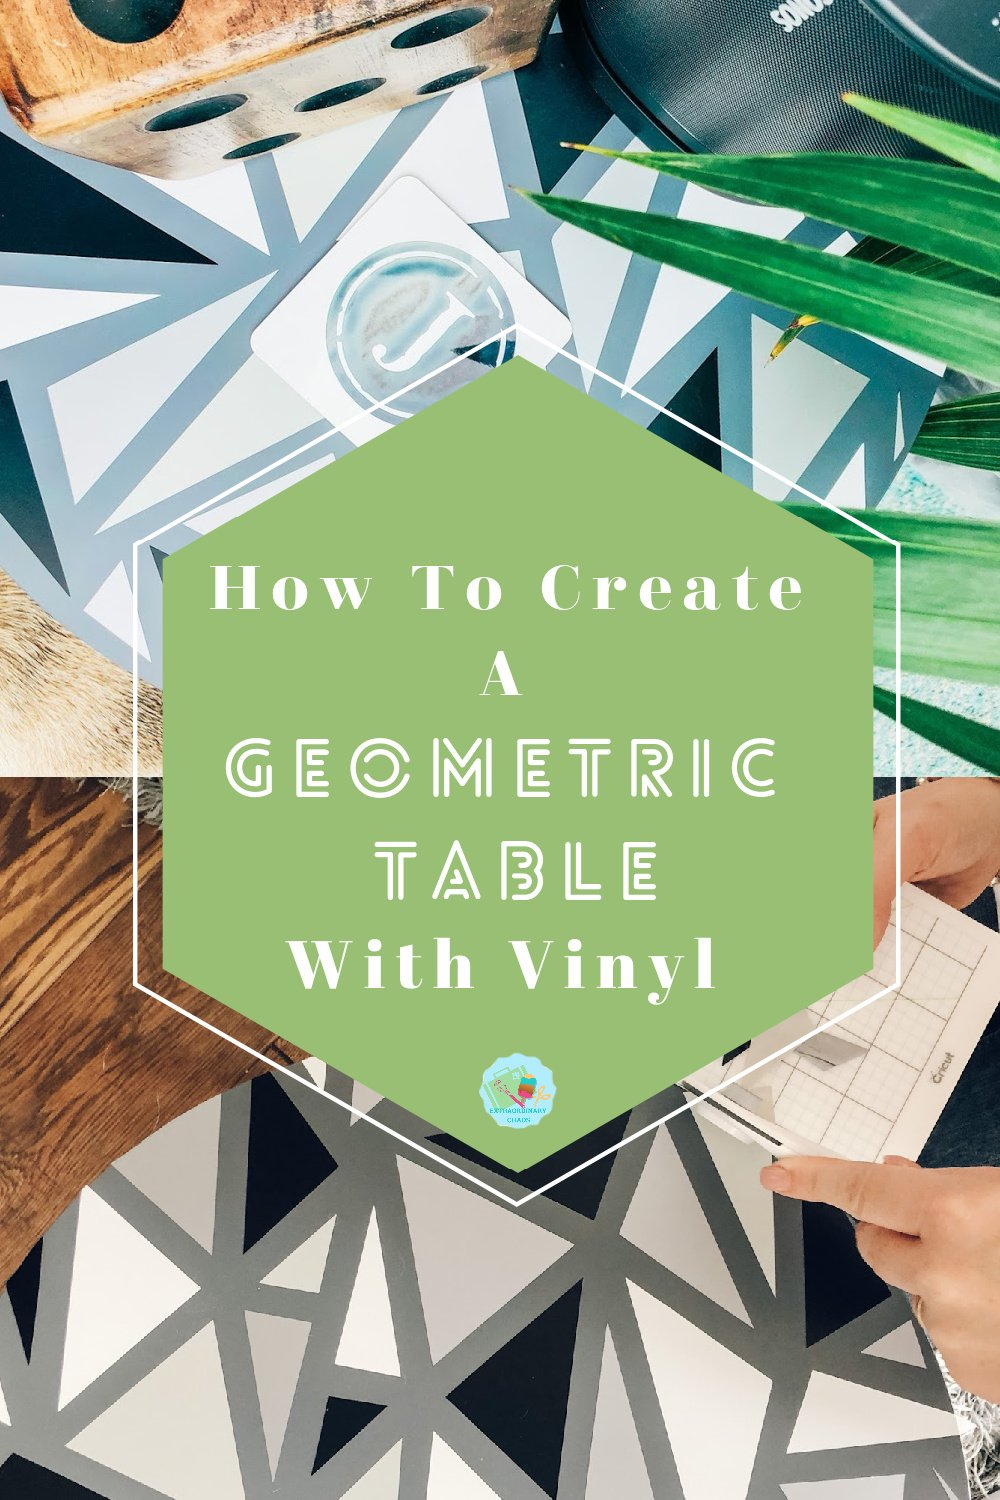 How to create a geometric table and be able to up cycle furniture with Cricut